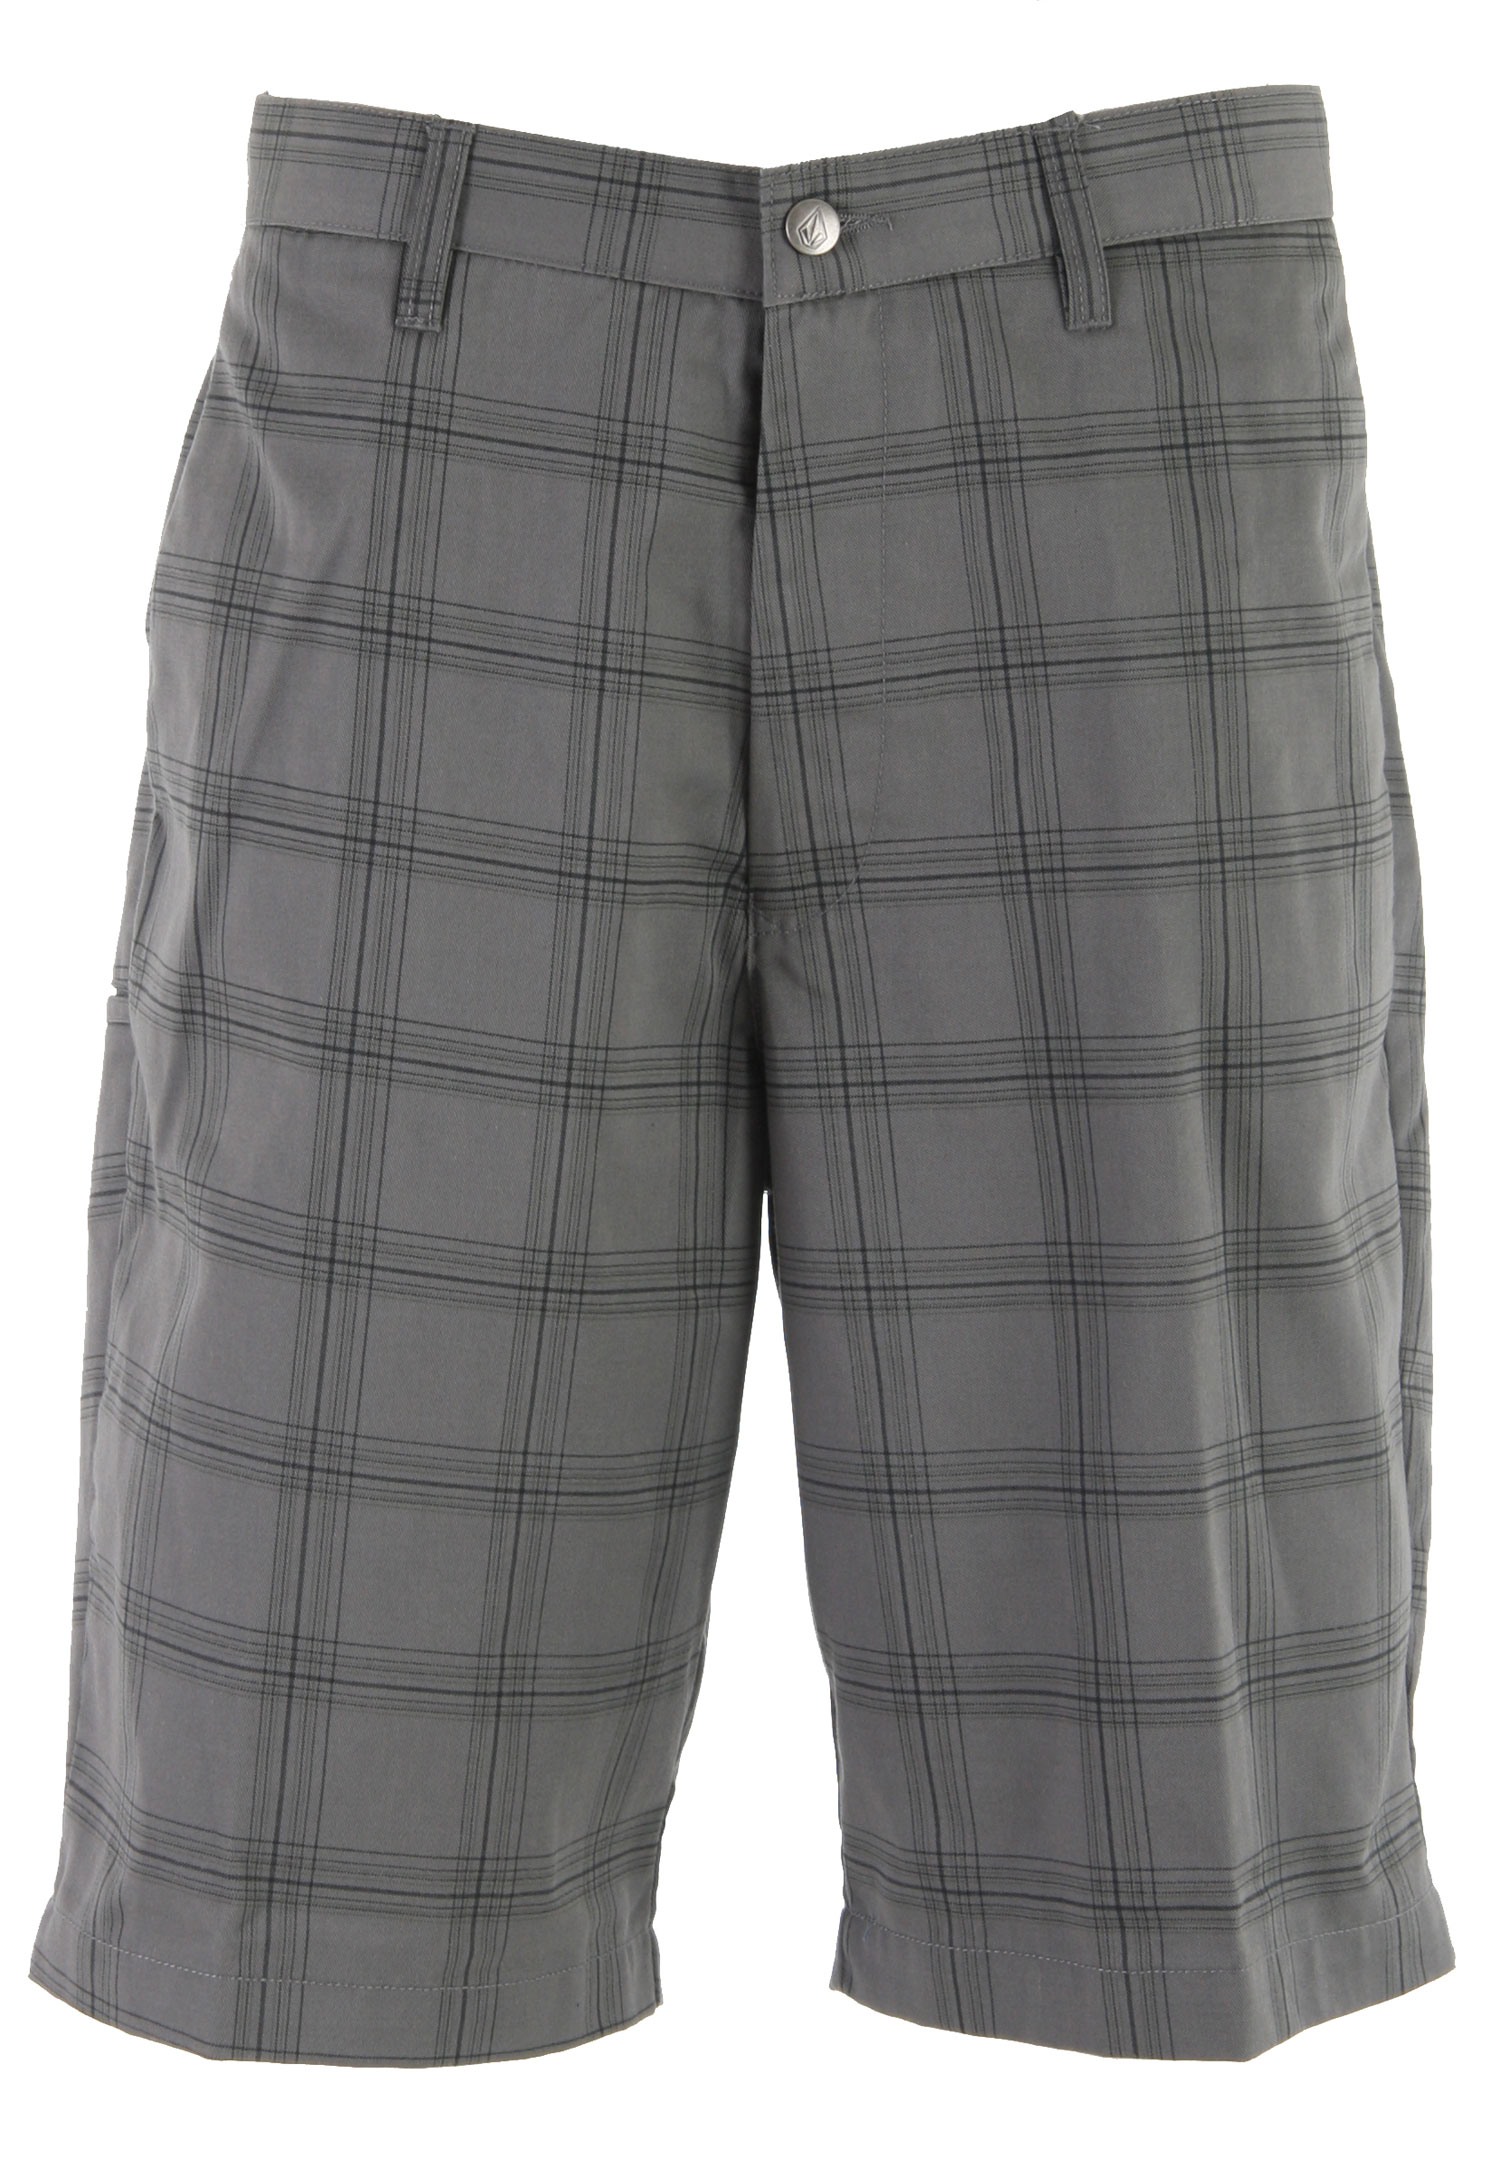 "Surf Add this classic statement piece to your wardrobe. The Volcom Frickin Plaid Chino Shorts features a plaid design, and a loose fit. Made with cotton and polyester, these shorts are ultra soft and super comfortable. Perfect for casual wear, sport these shorts with your favorite polo shirt and you're set to hit the town in style.Key Features of the Volcom Frickin Plaid Chino Shorts: 22"" Outseam Relaxed fit chino short Garment wash w/ softener 65% Polyester/35% Cotton Twill - $44.95"